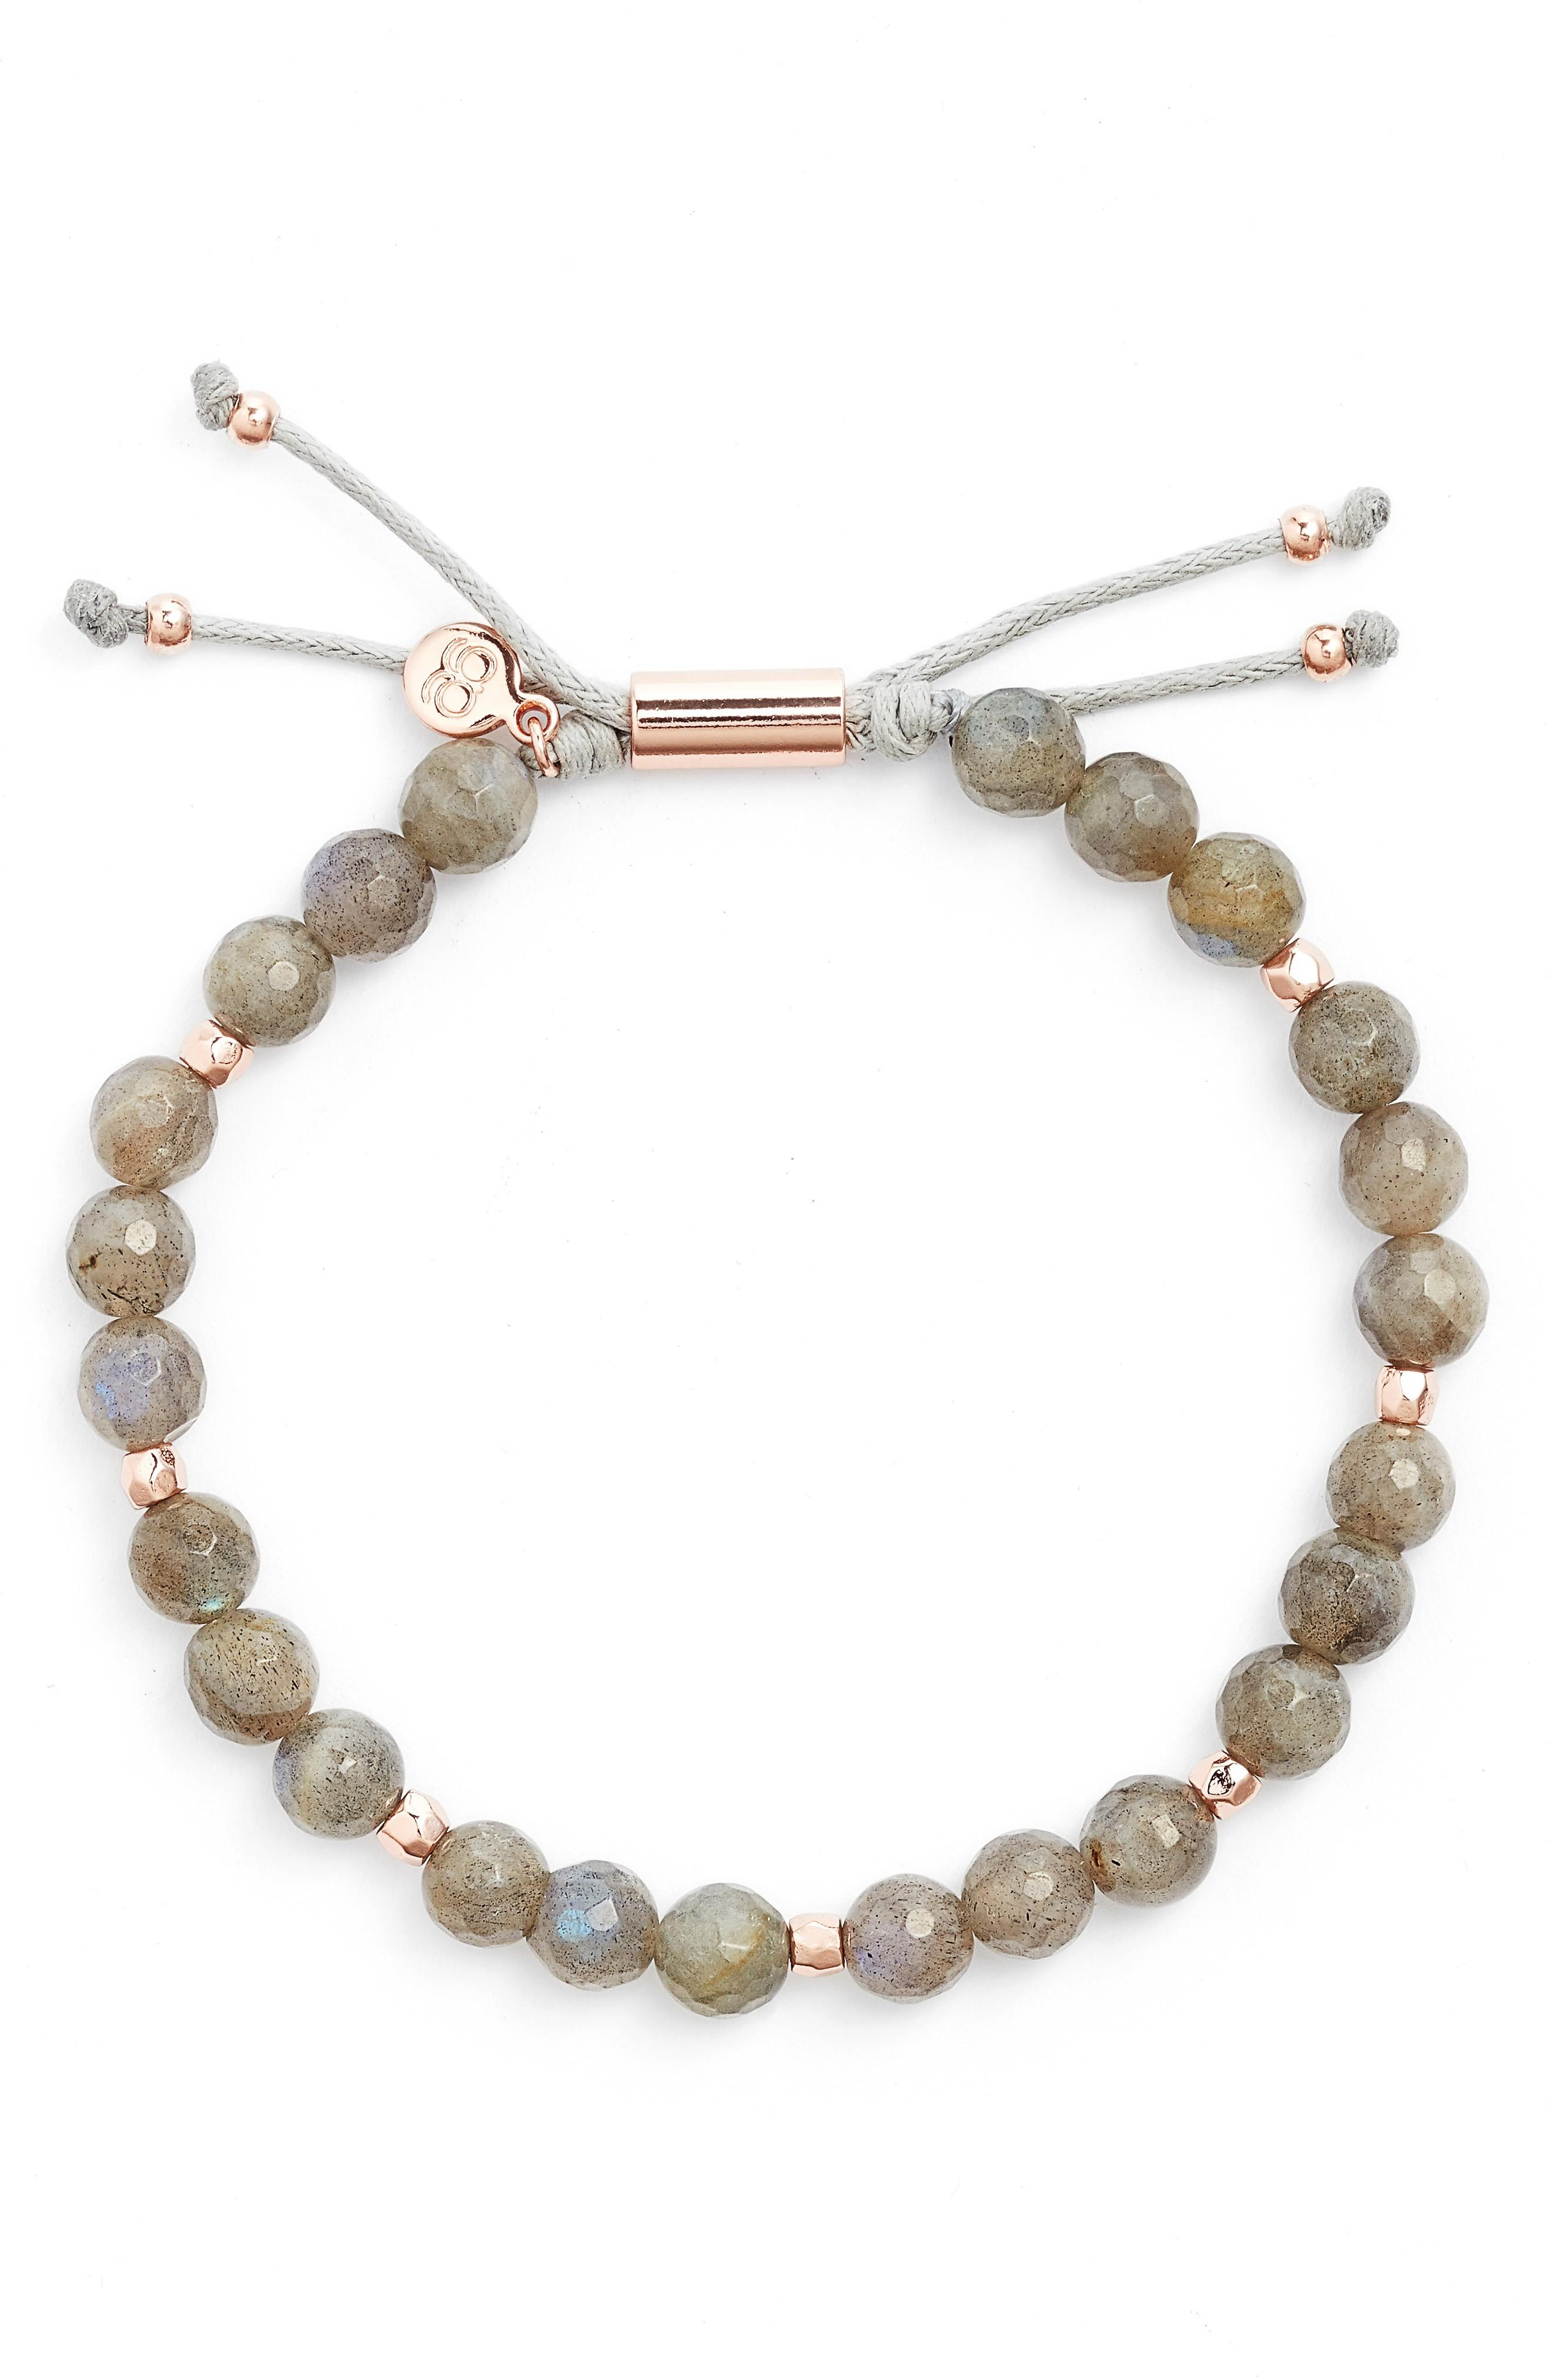 Gorjana Power Bead Adjustable Bracelet In Labradorite/ Rose Gold